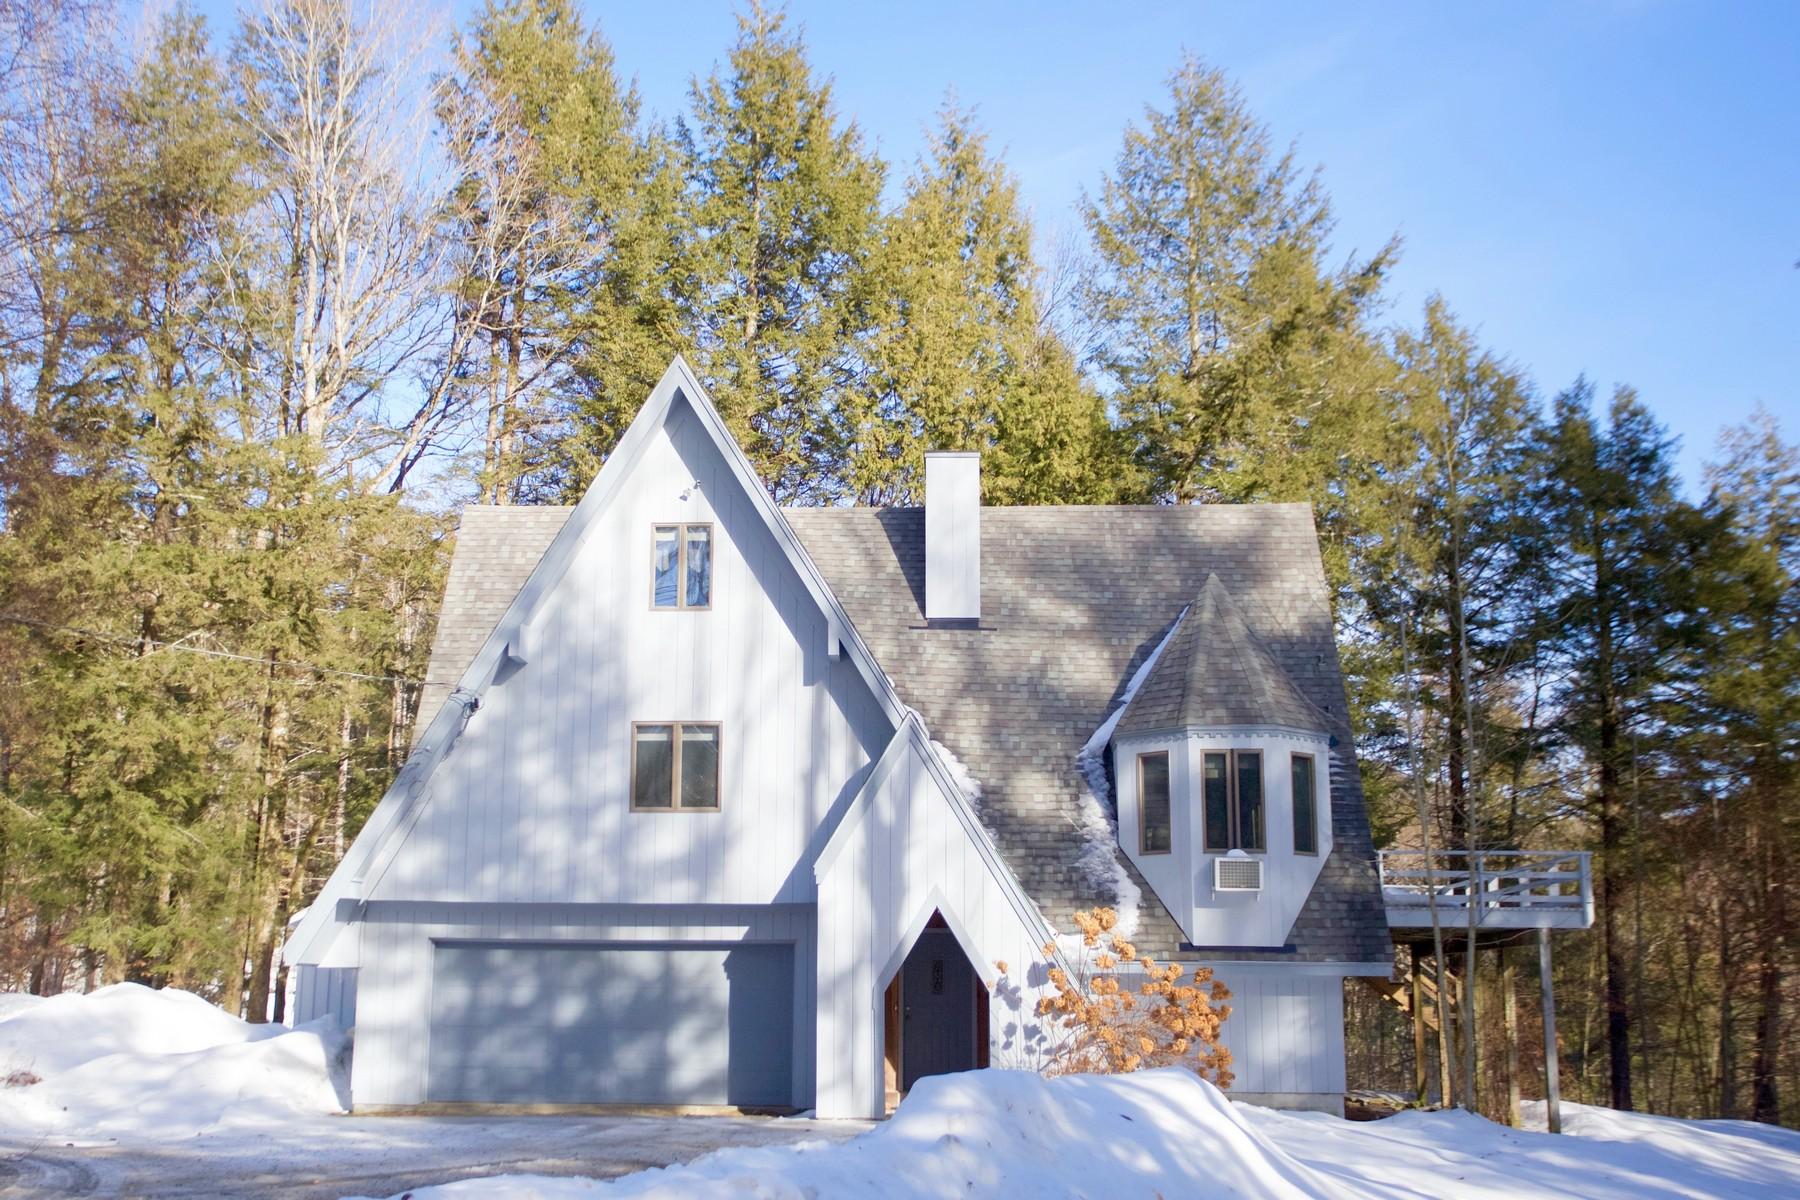 Single Family Home for Sale at Lovely Vermont Contemporary 332 Hidden Heights Chester, Vermont 05143 United States